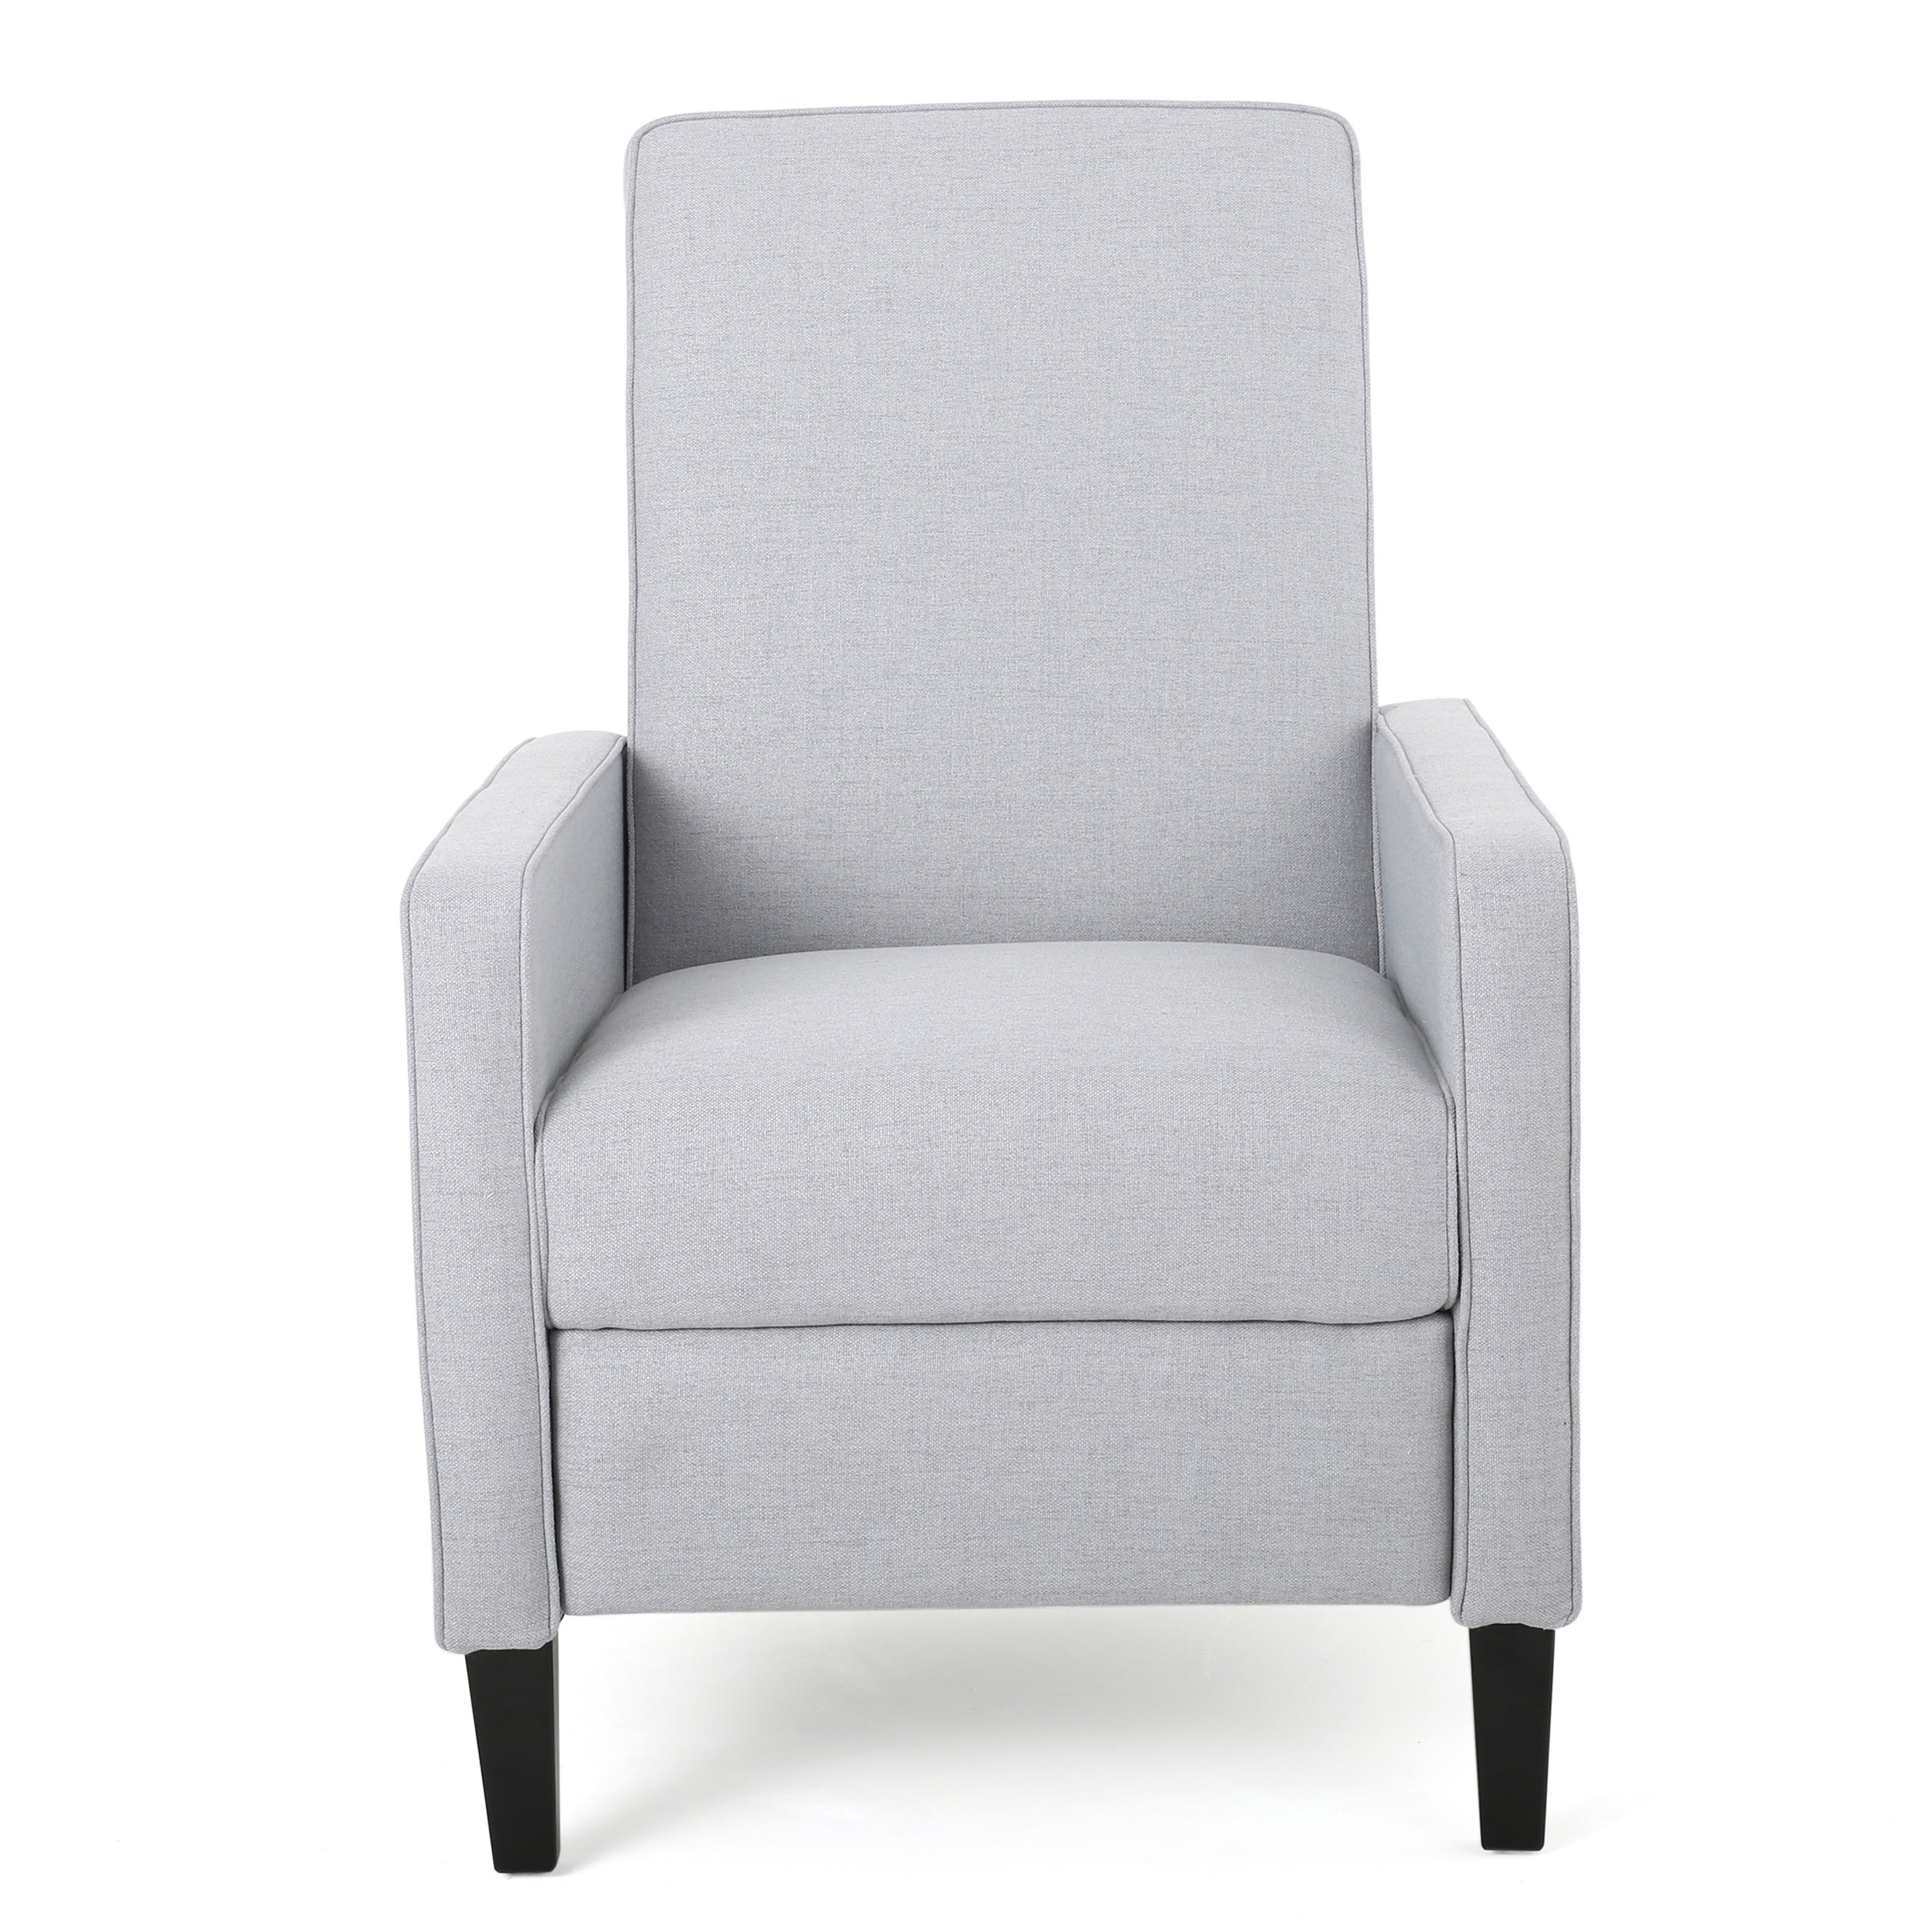 Delightful Dalton Fabric Recliner Club Chair By Christopher Knight Home (Option: Light  Grey)